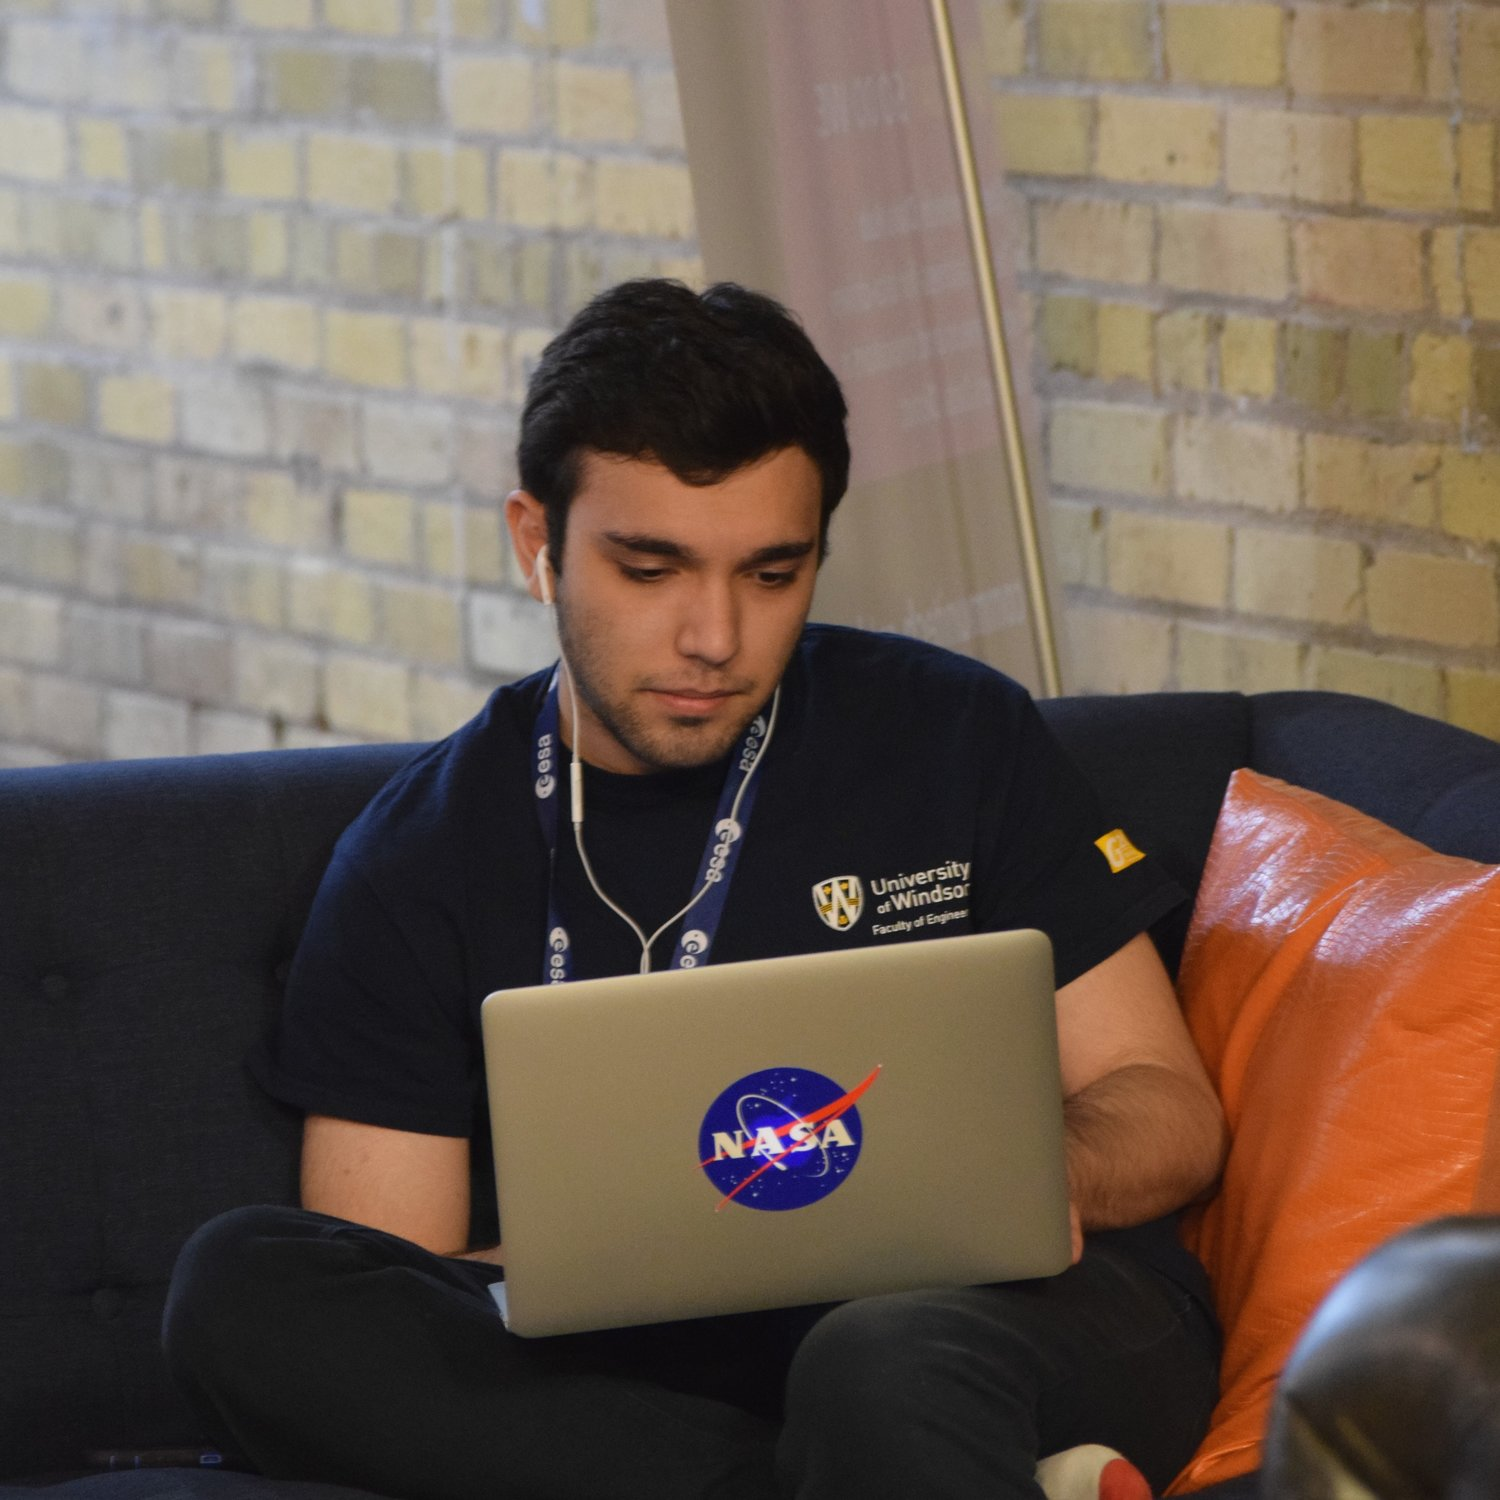 2017 NASA Space Apps participant typing on his computer in the Kitchener Communitech space.